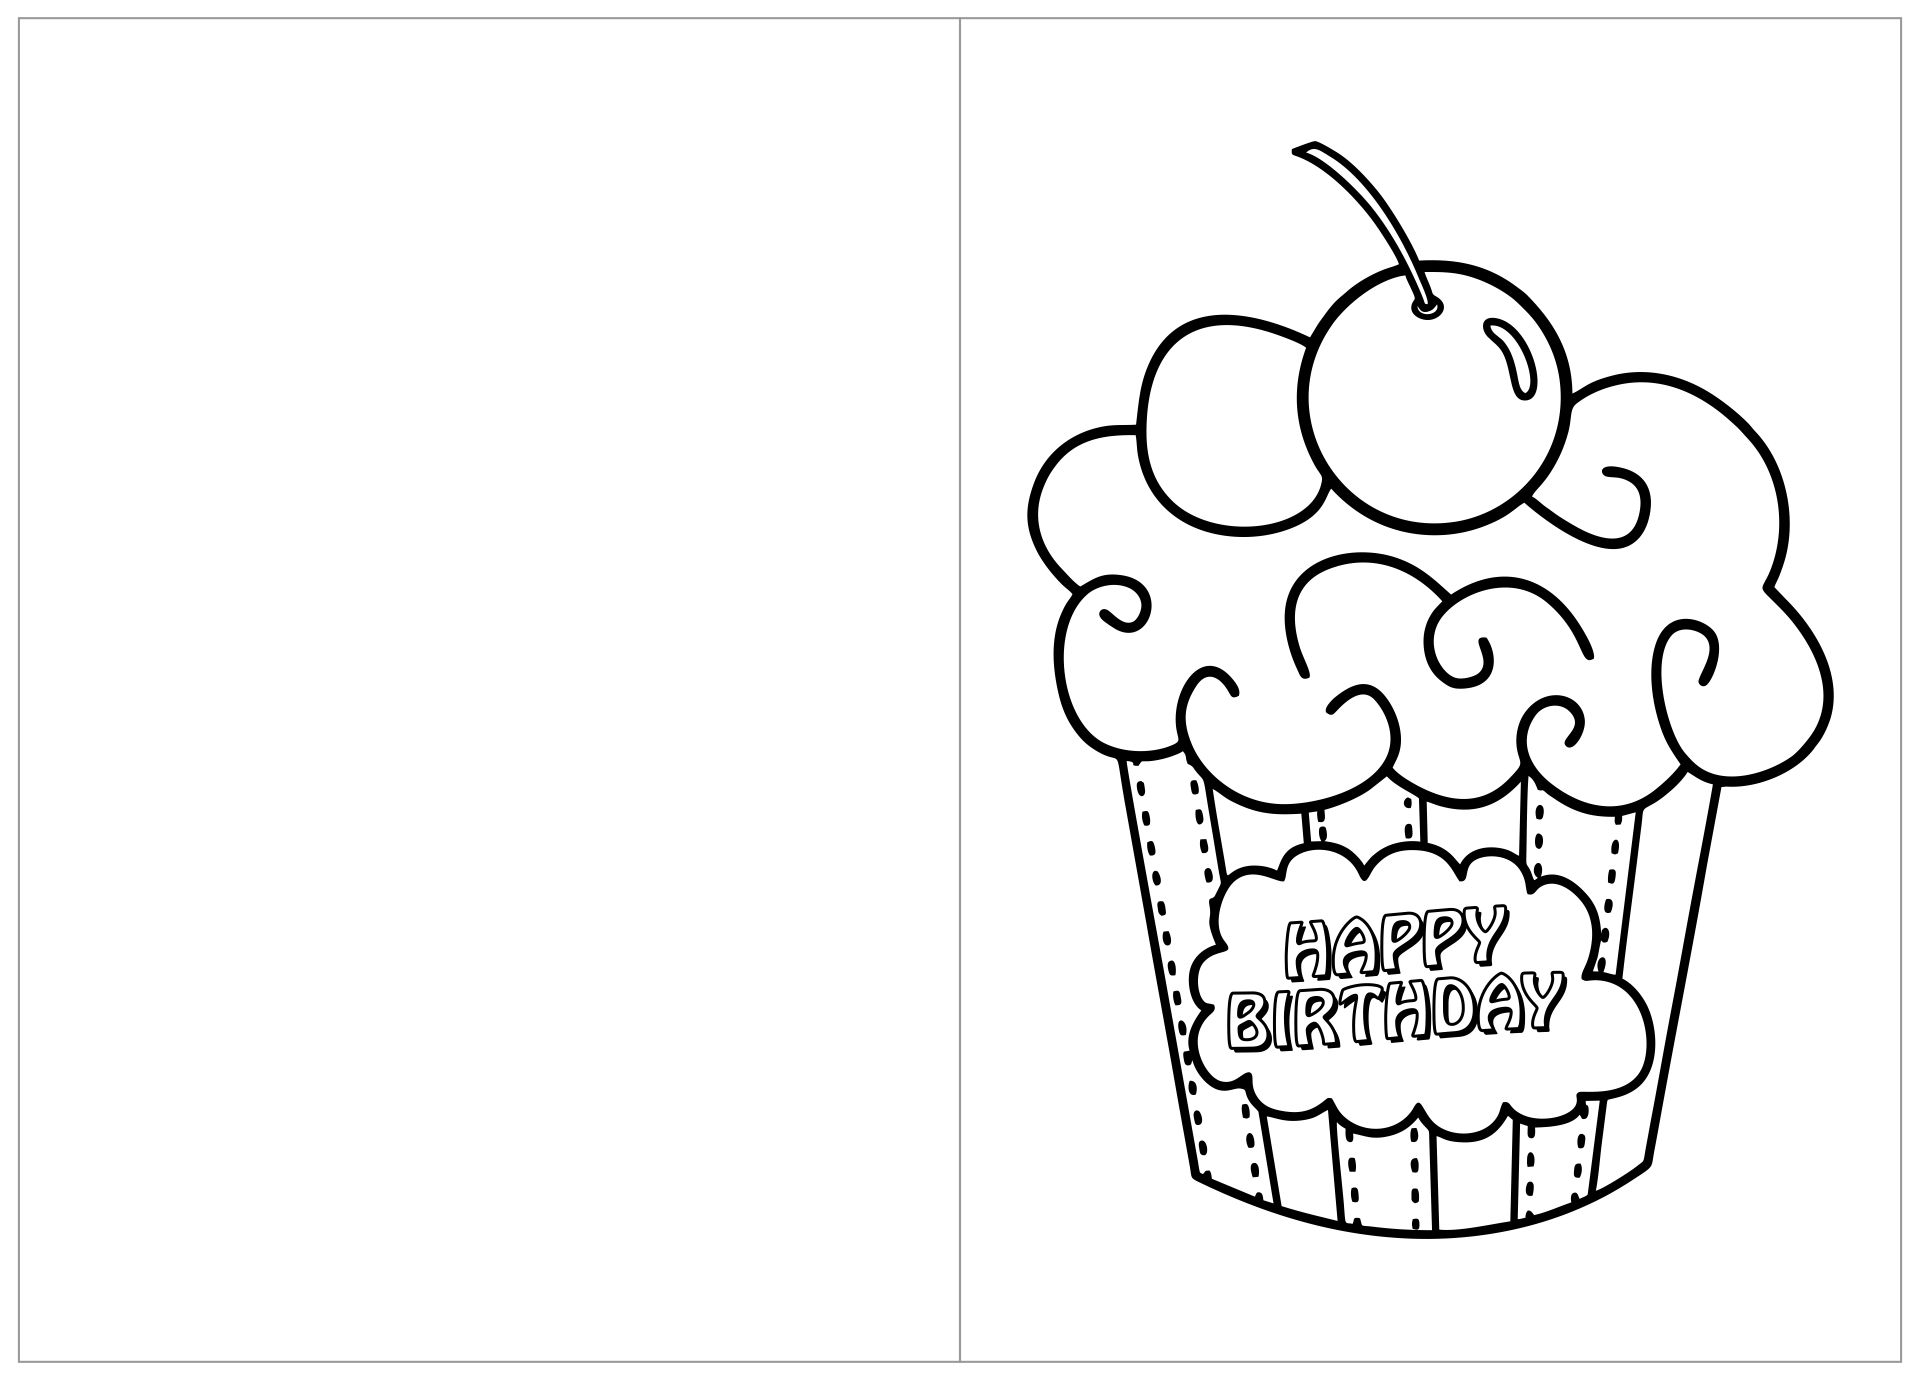 Foldable Printable Birthday Cards To Color